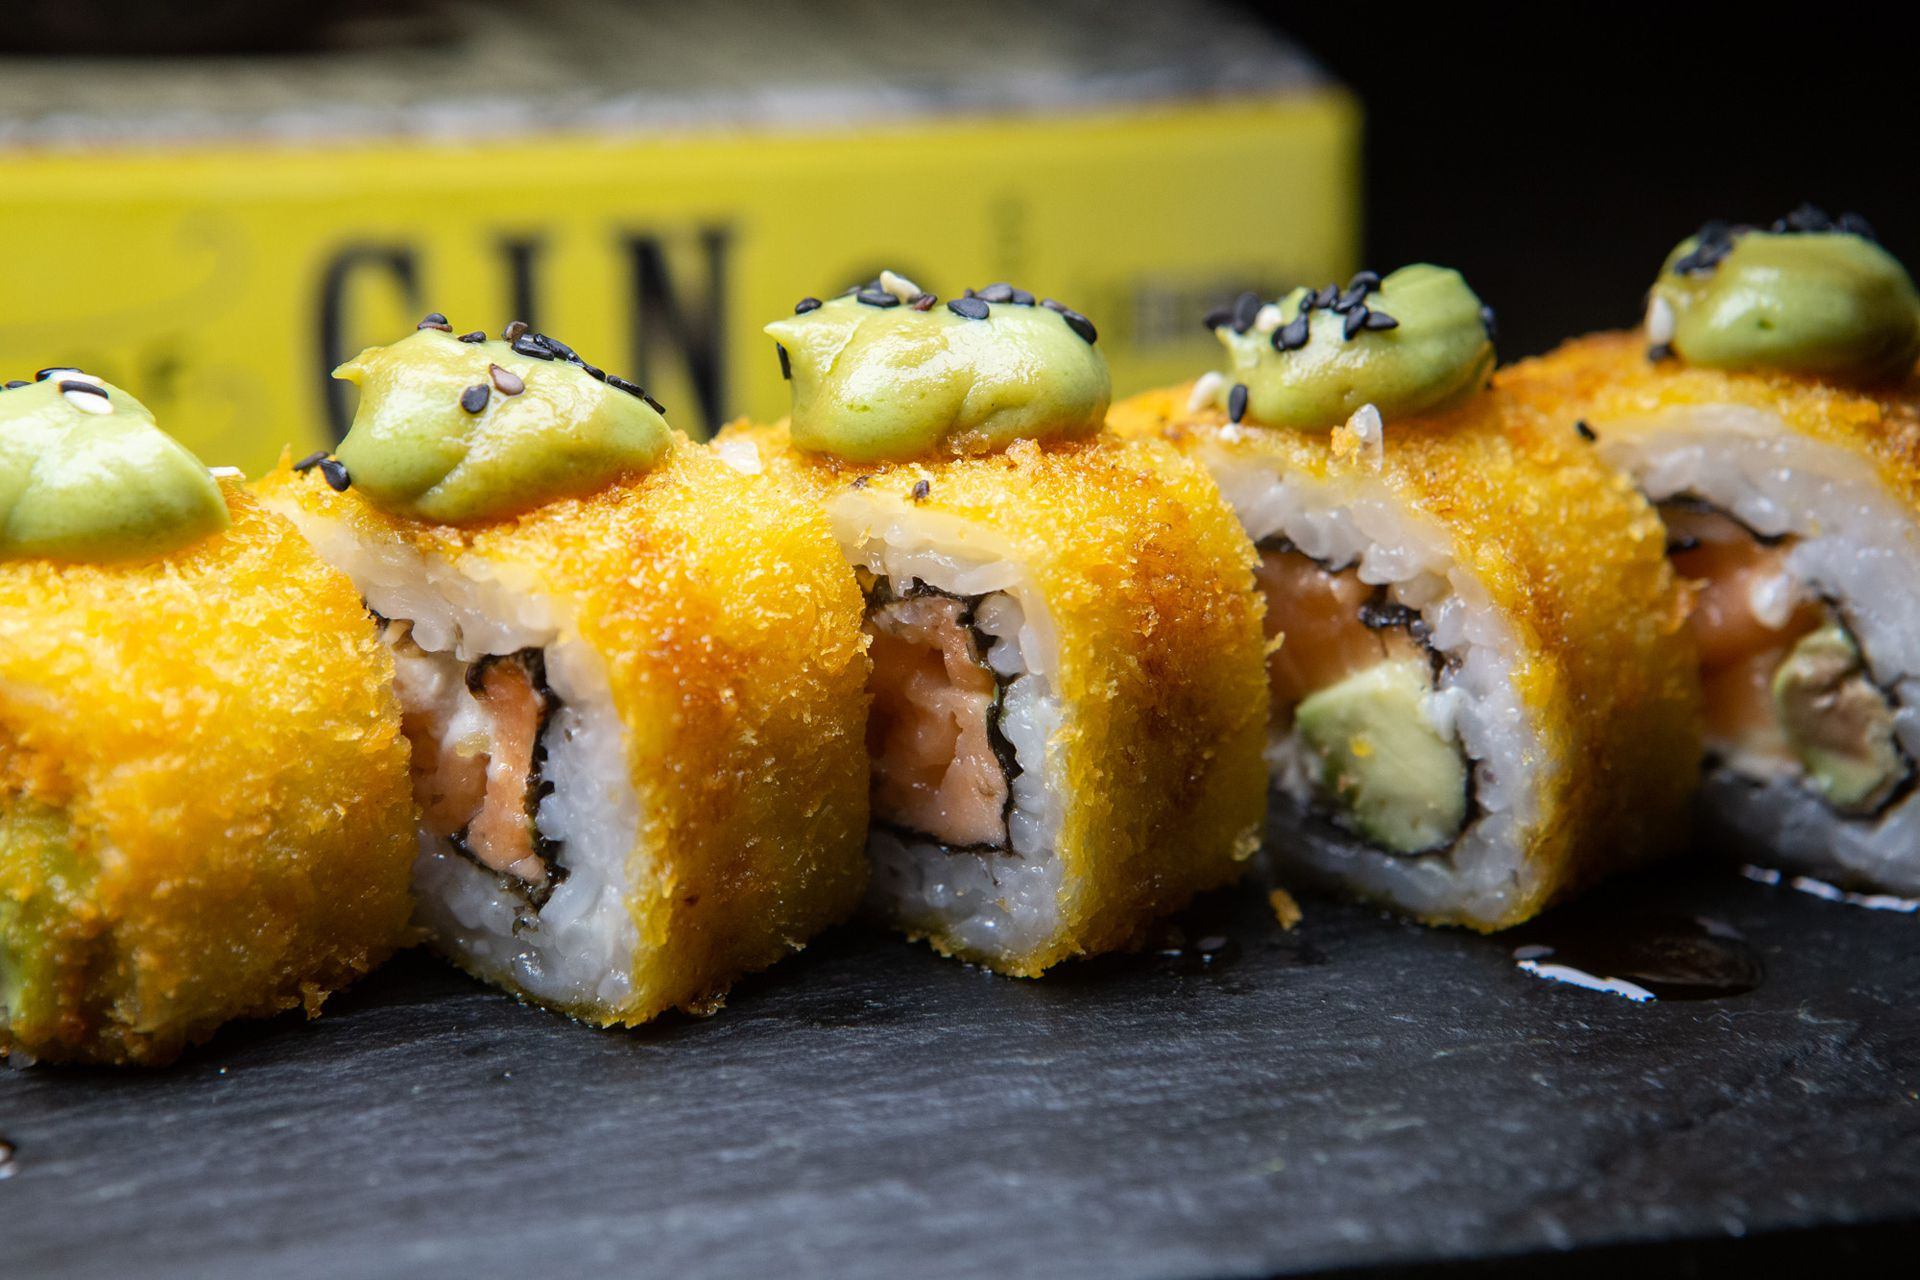 El Fried Maki, con panko crocante